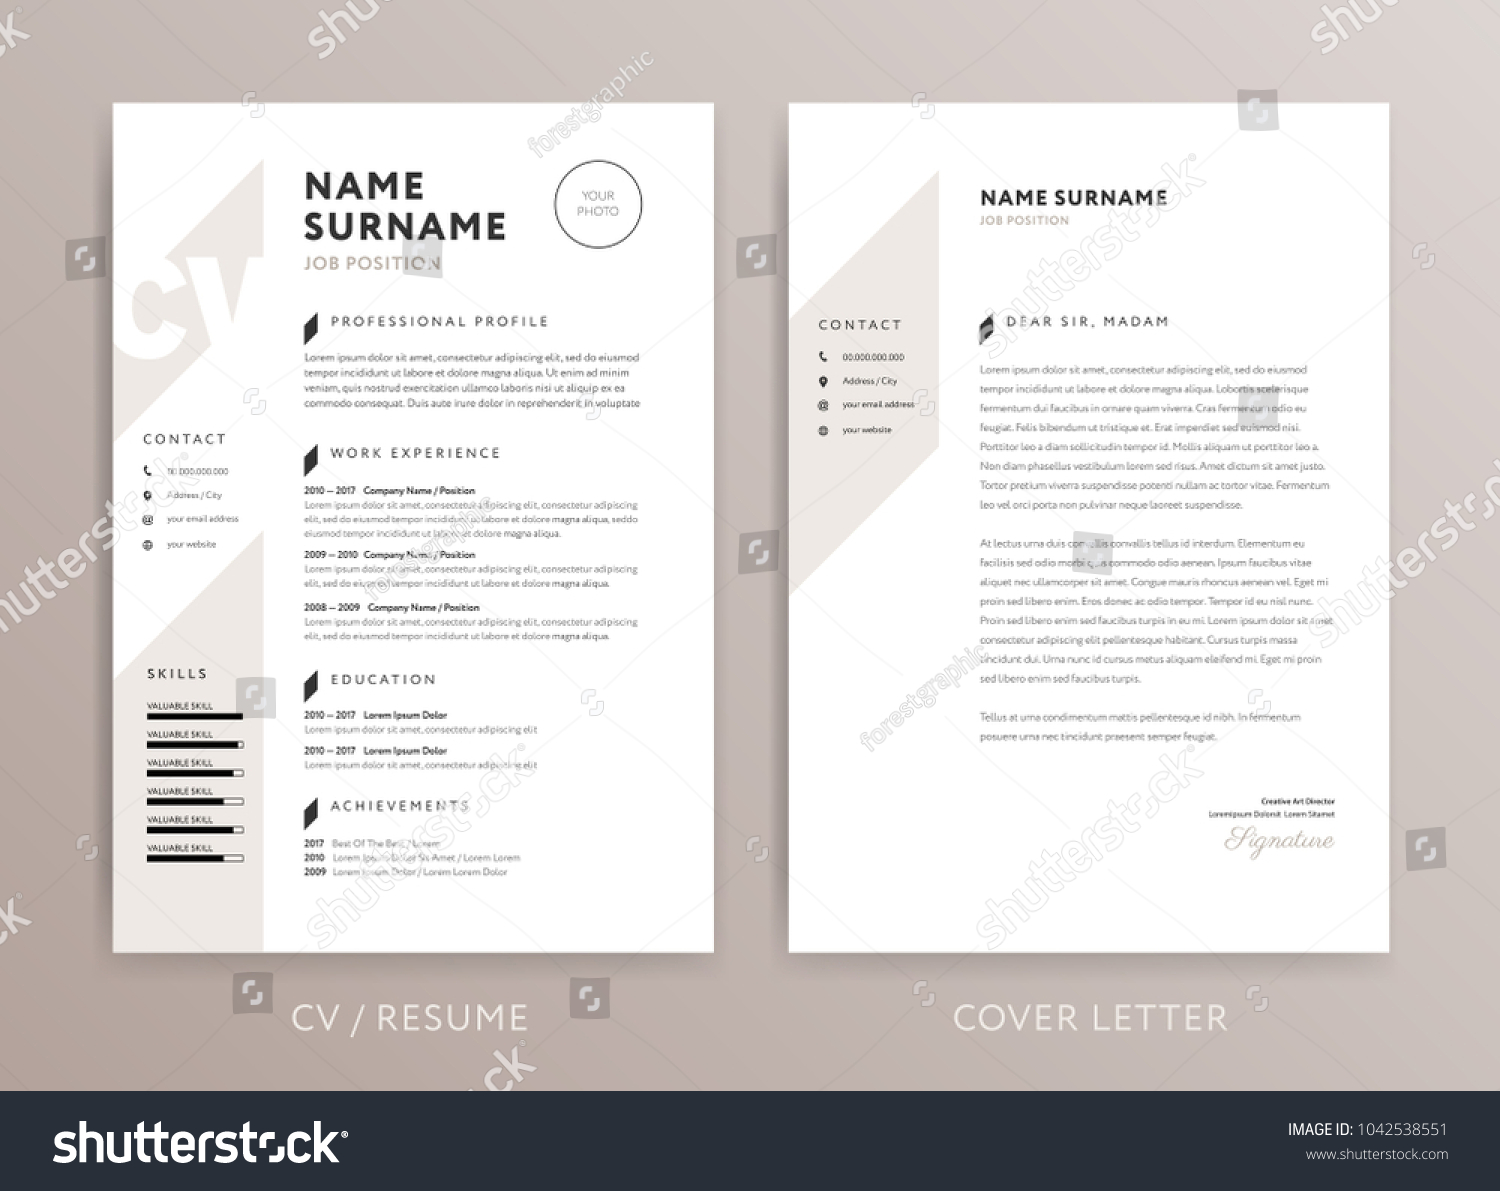 Stylish curriculum vitae cv cover letter stock vector hd royalty stylish curriculum vitae cv and cover letter design template rose brown color vector background spiritdancerdesigns Gallery